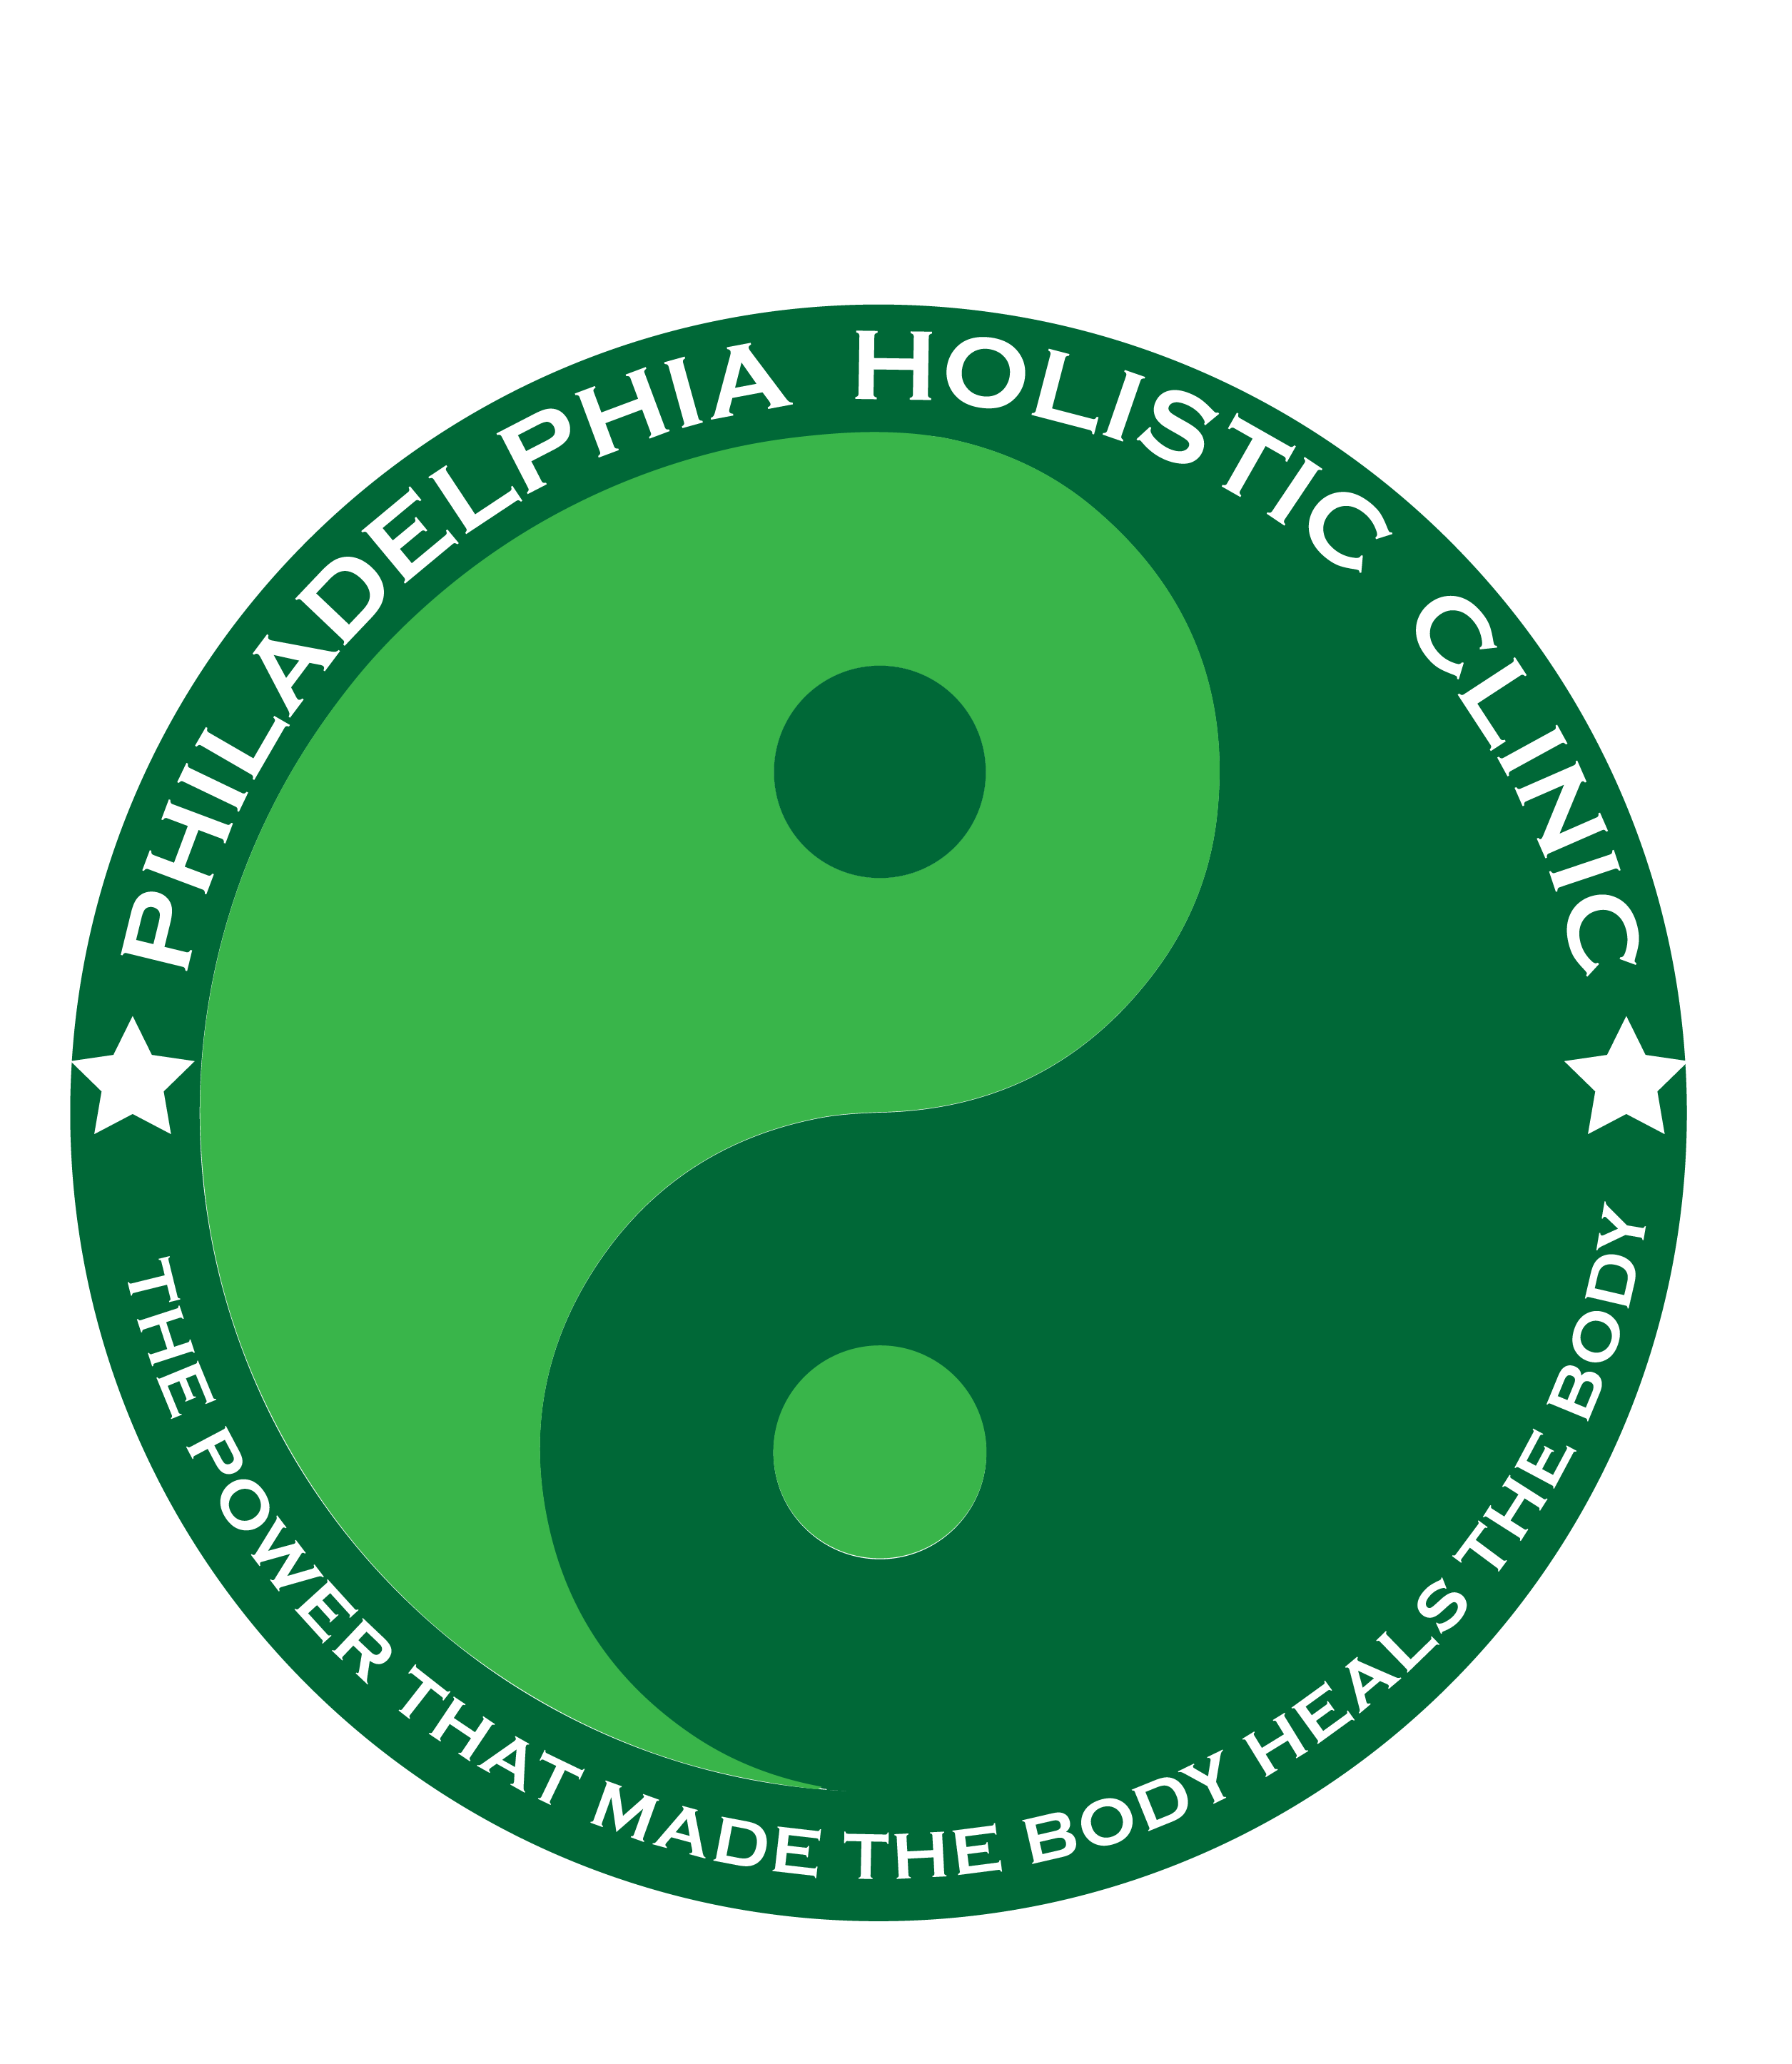 Naturopathic Doctor Near Me - Philadelphia Holistic Clinic ...